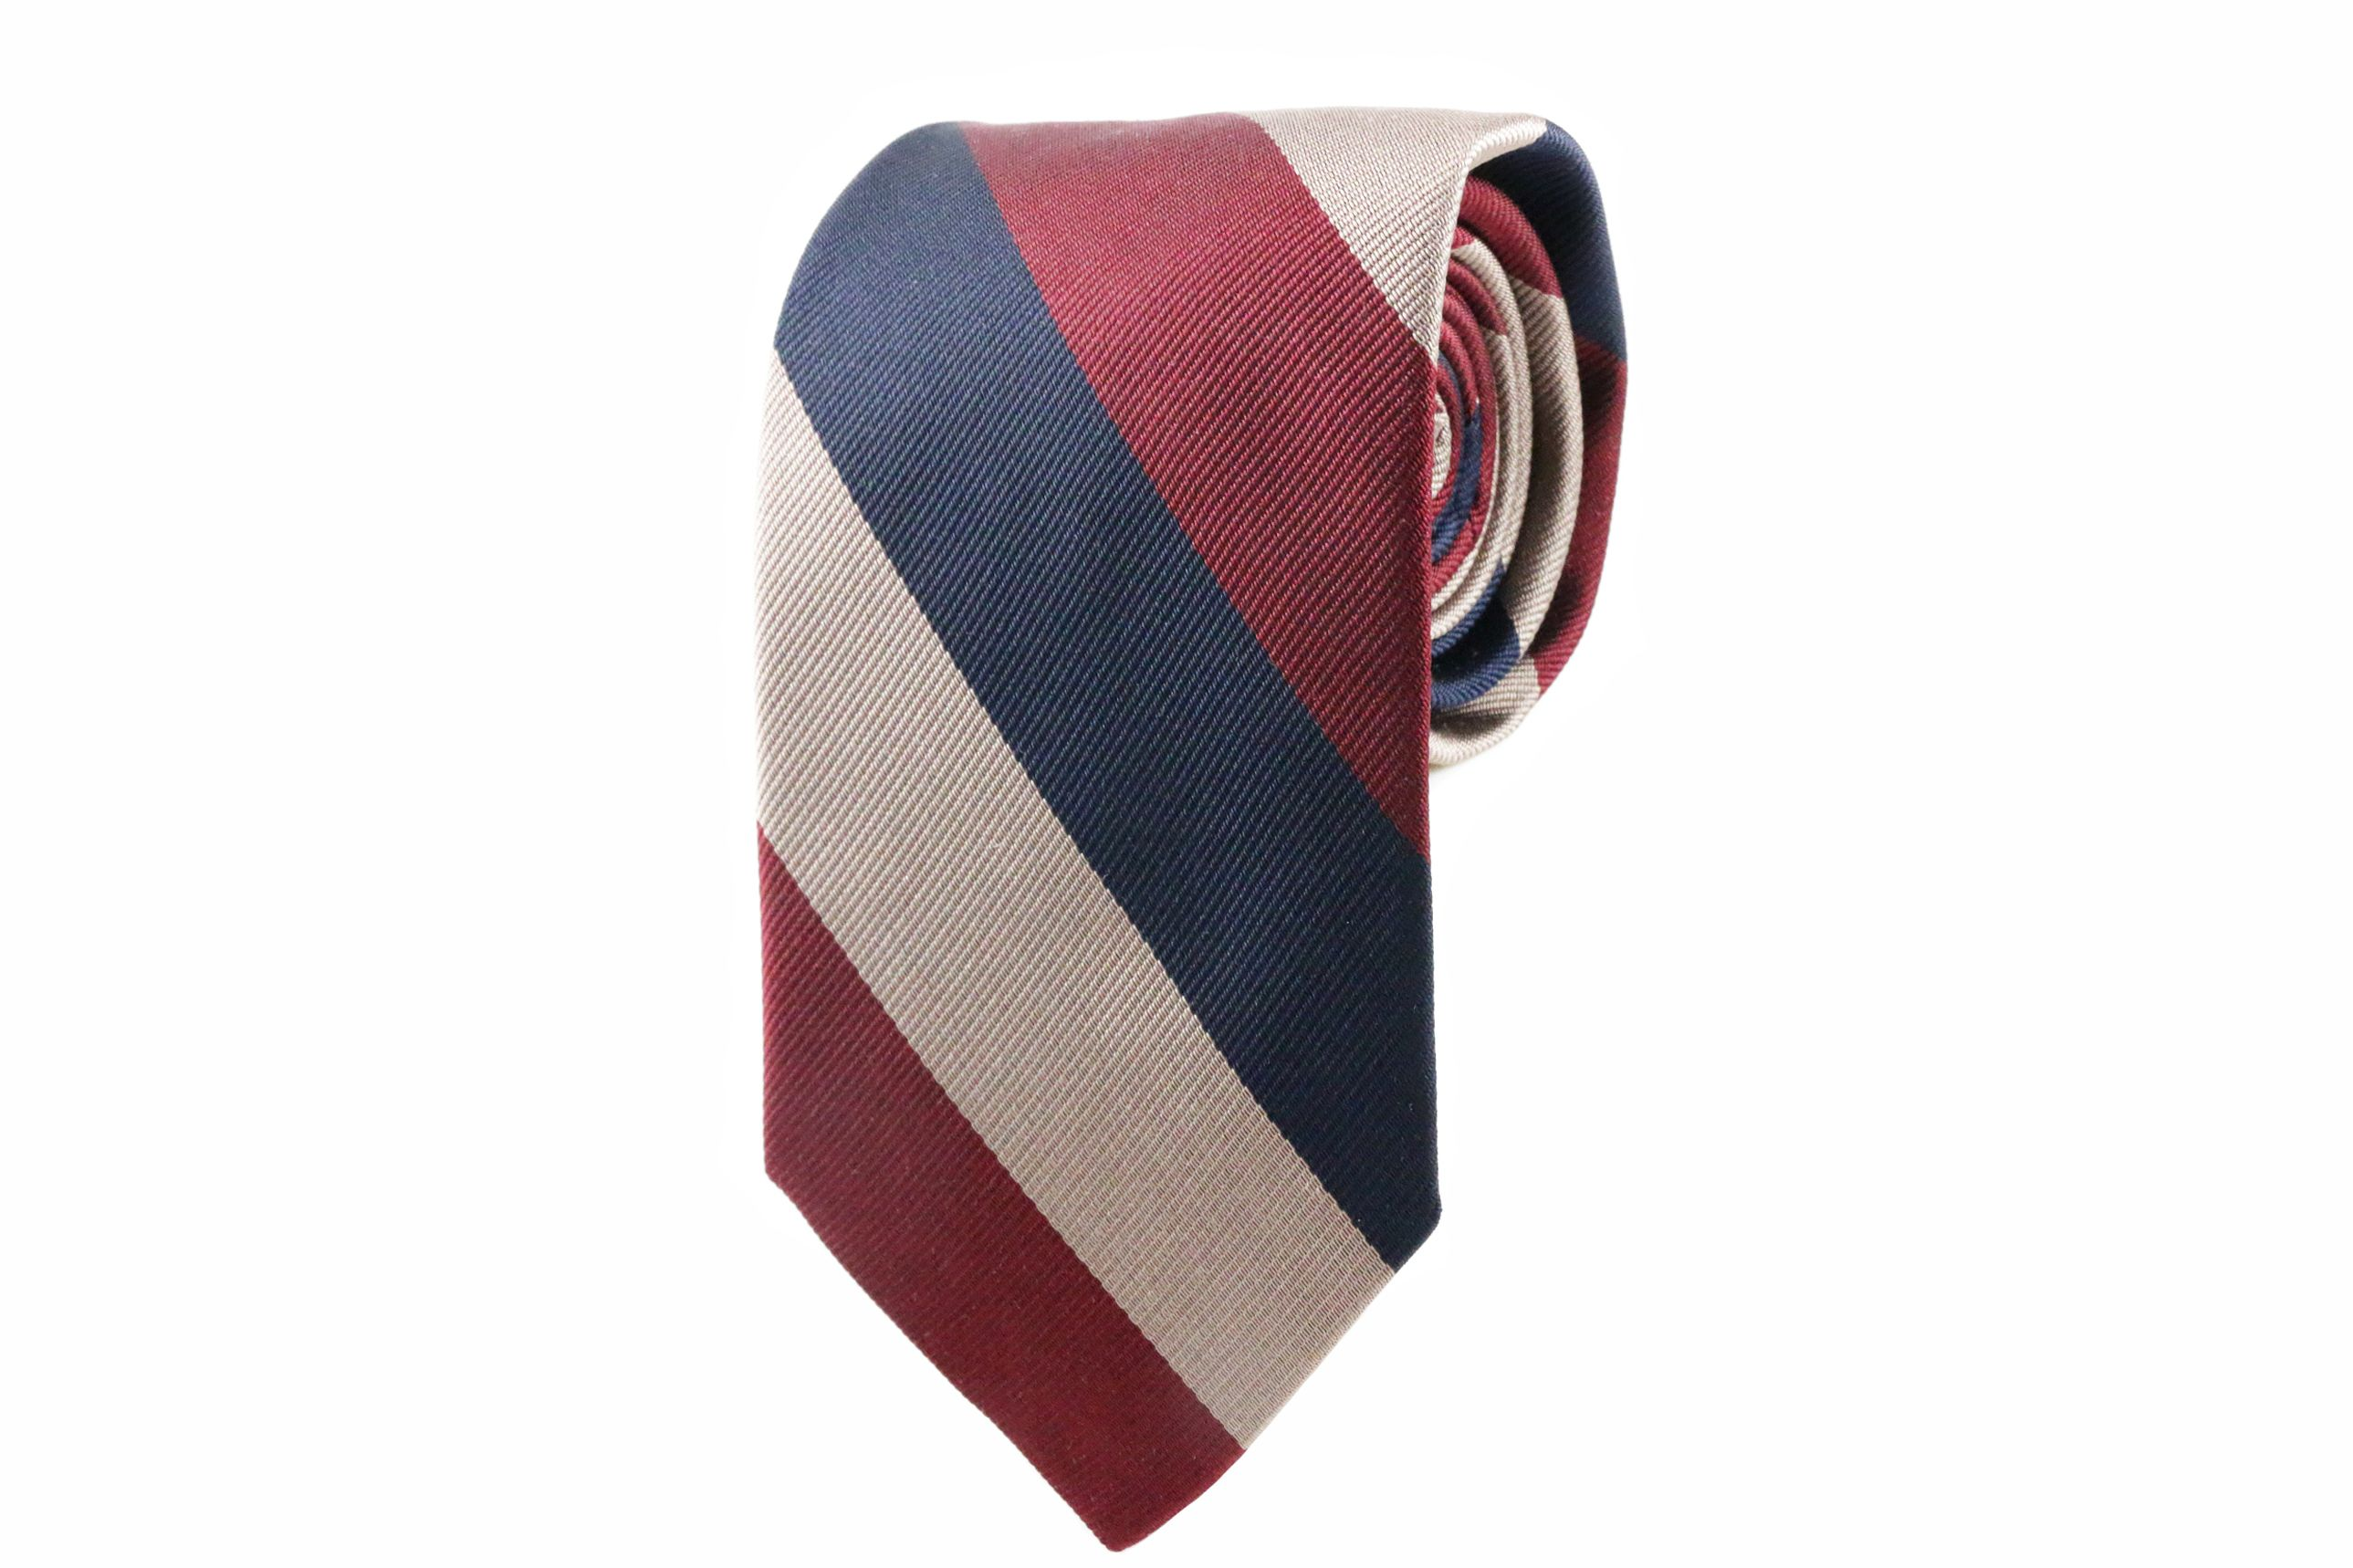 Silk tie from The American Nobility Collection from LORD WALLINGTON   http://lordwallington.com/product/navy-blue-crimson-taupe-striped-tie/